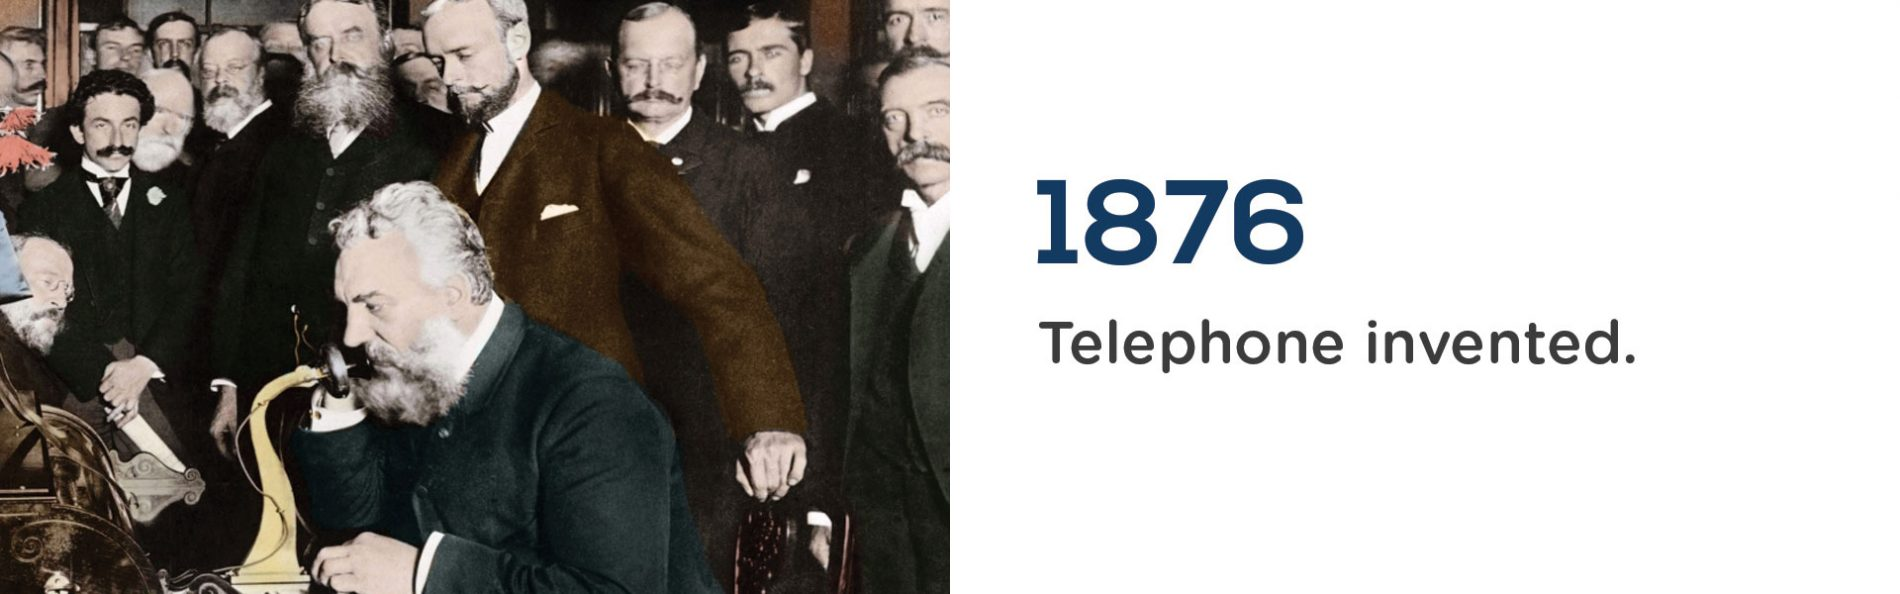 The Telephone was invented by Alexander Graham Bell in 1876.Wrigley Claydon Solicitors, Trusted for 200 years